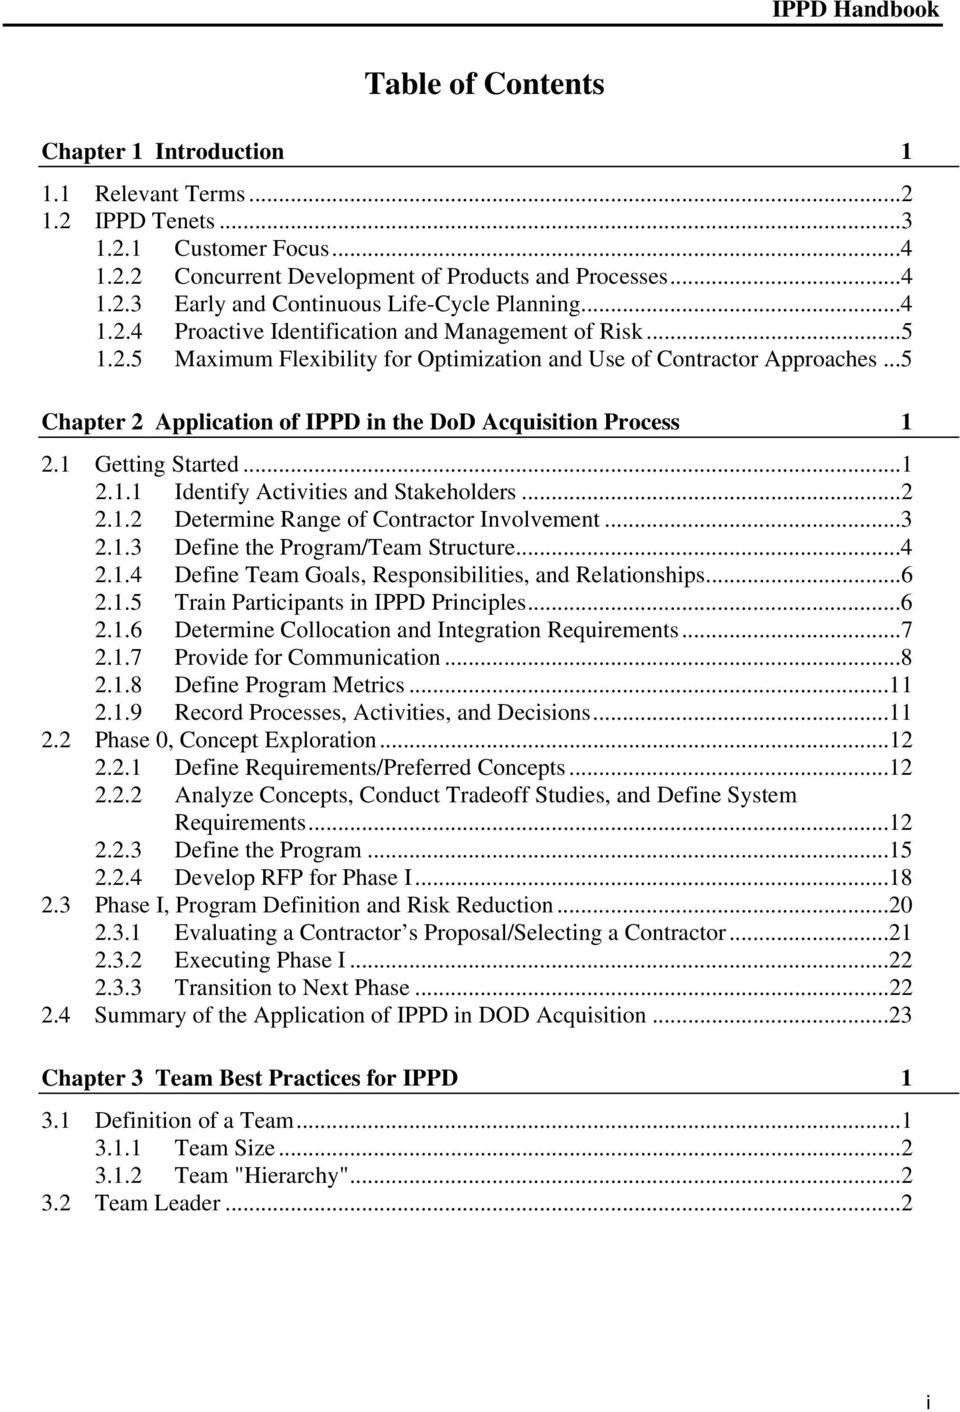 ..5 Chapter 2 Application of IPPD in the DoD Acquisition Process 1 2.1 Getting Started...1 2.1.1 Identify Activities and Stakeholders...2 2.1.2 Determine Range of Contractor Involvement...3 2.1.3 Define the Program/Team Structure.